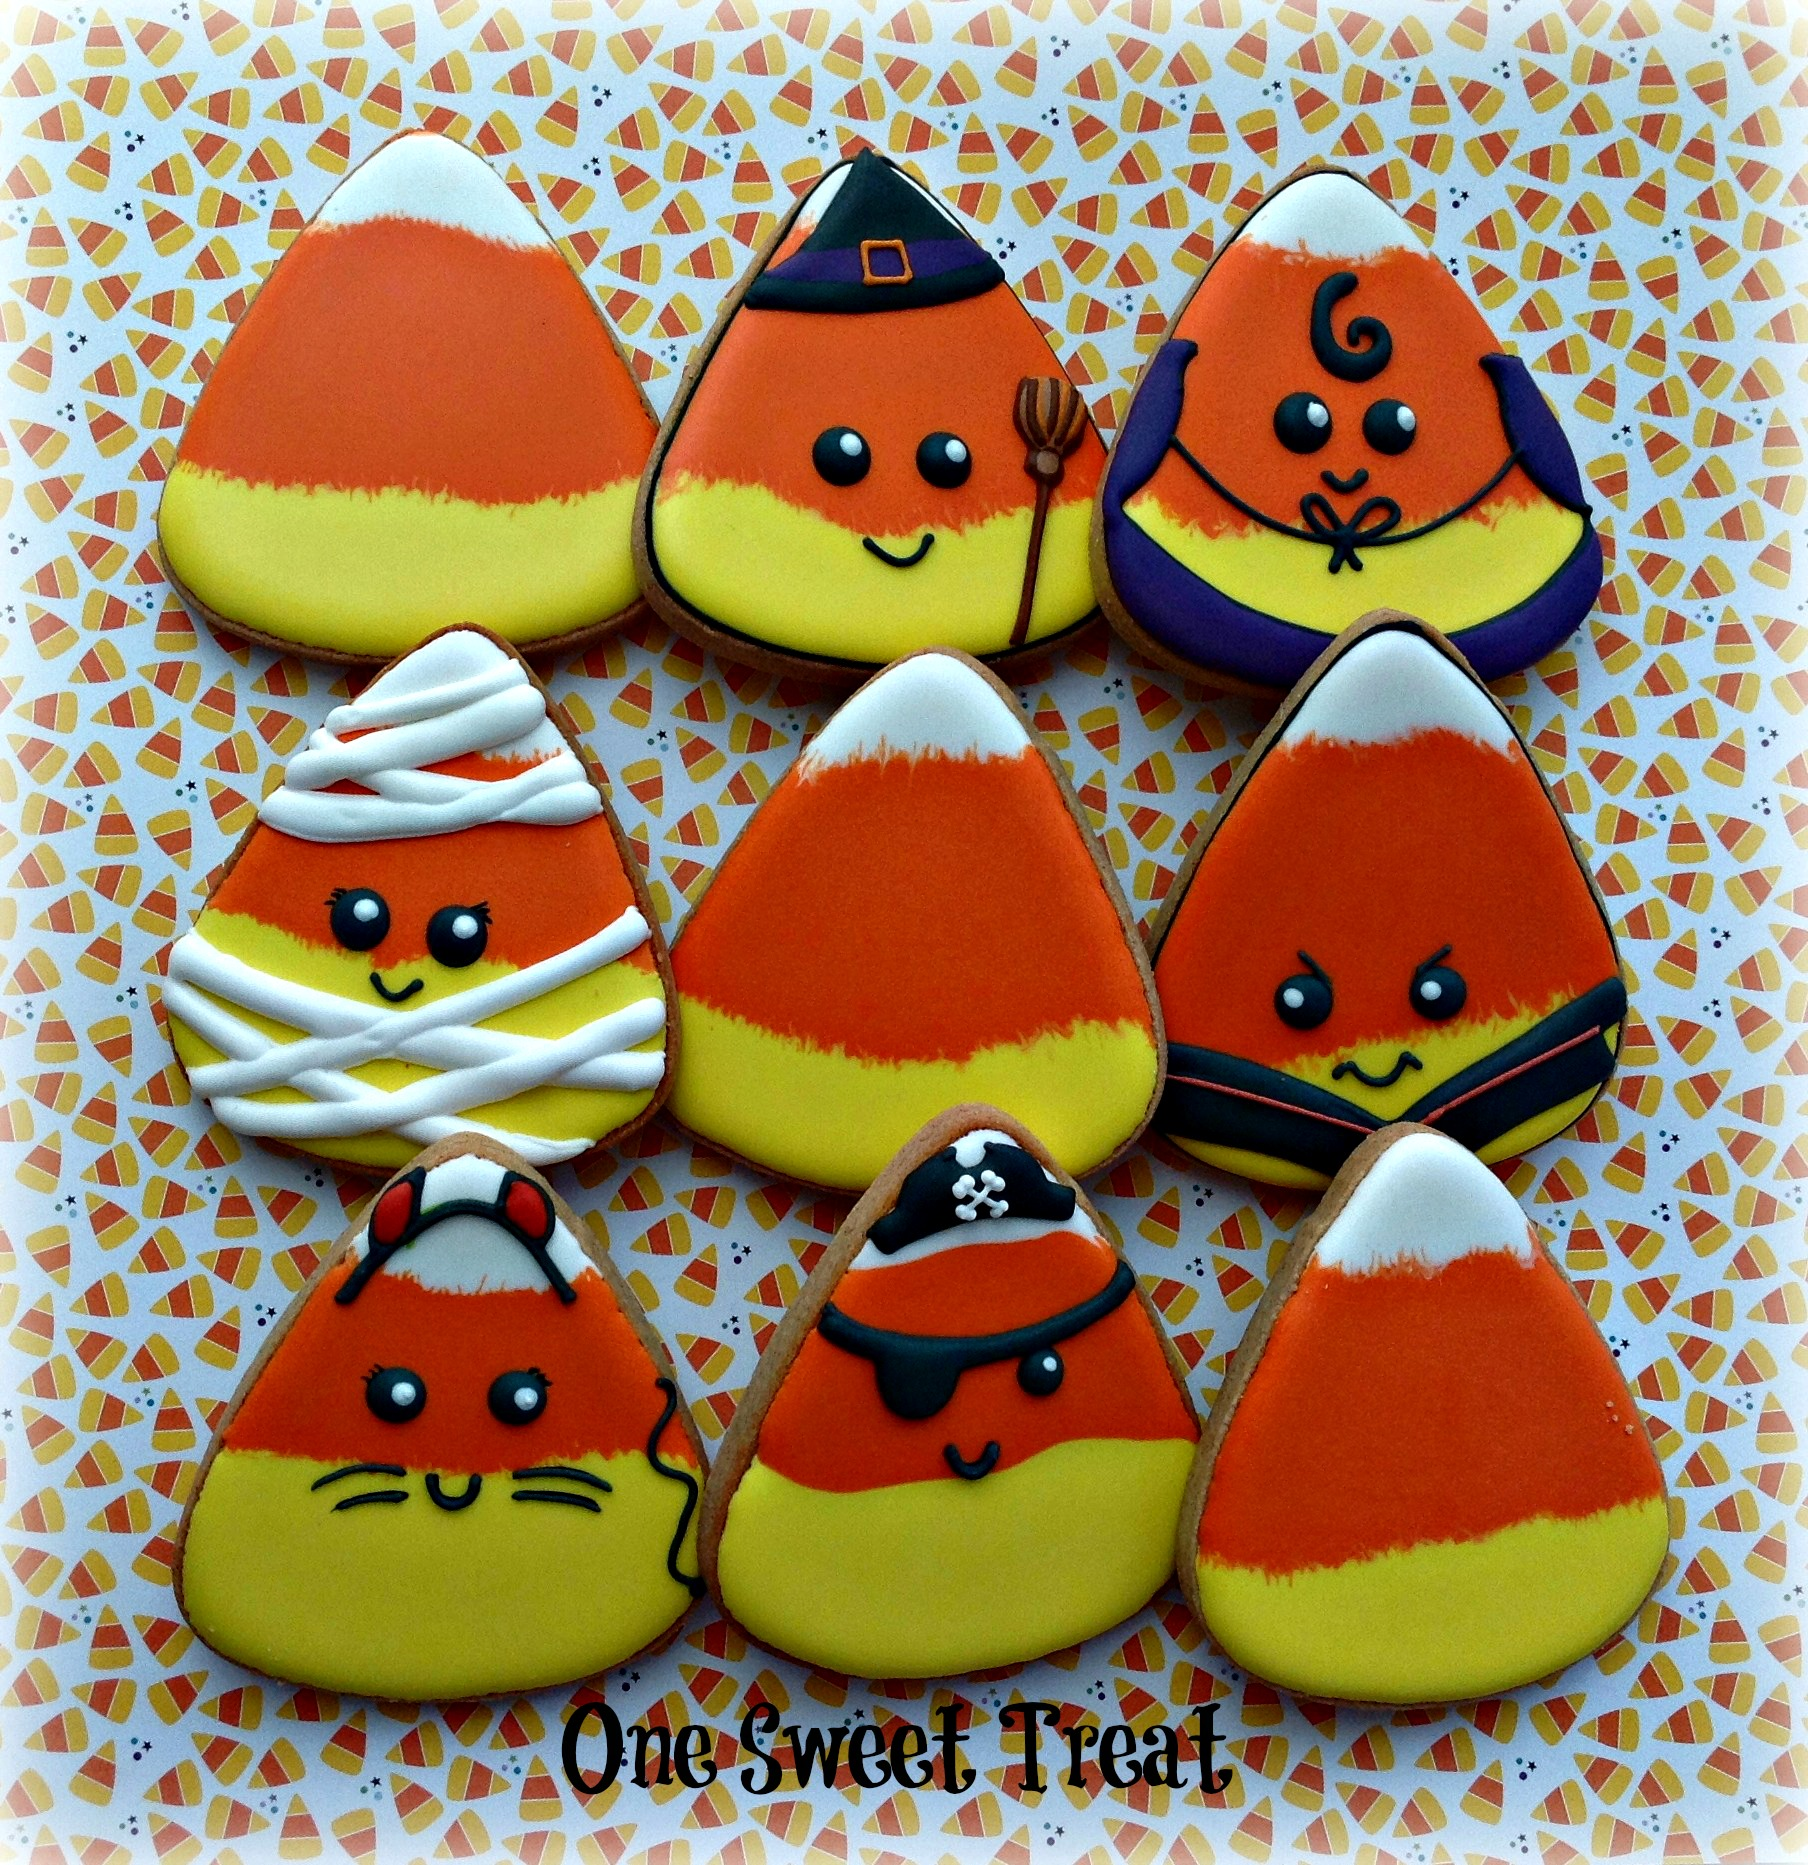 candy corn faces L IMG_6935